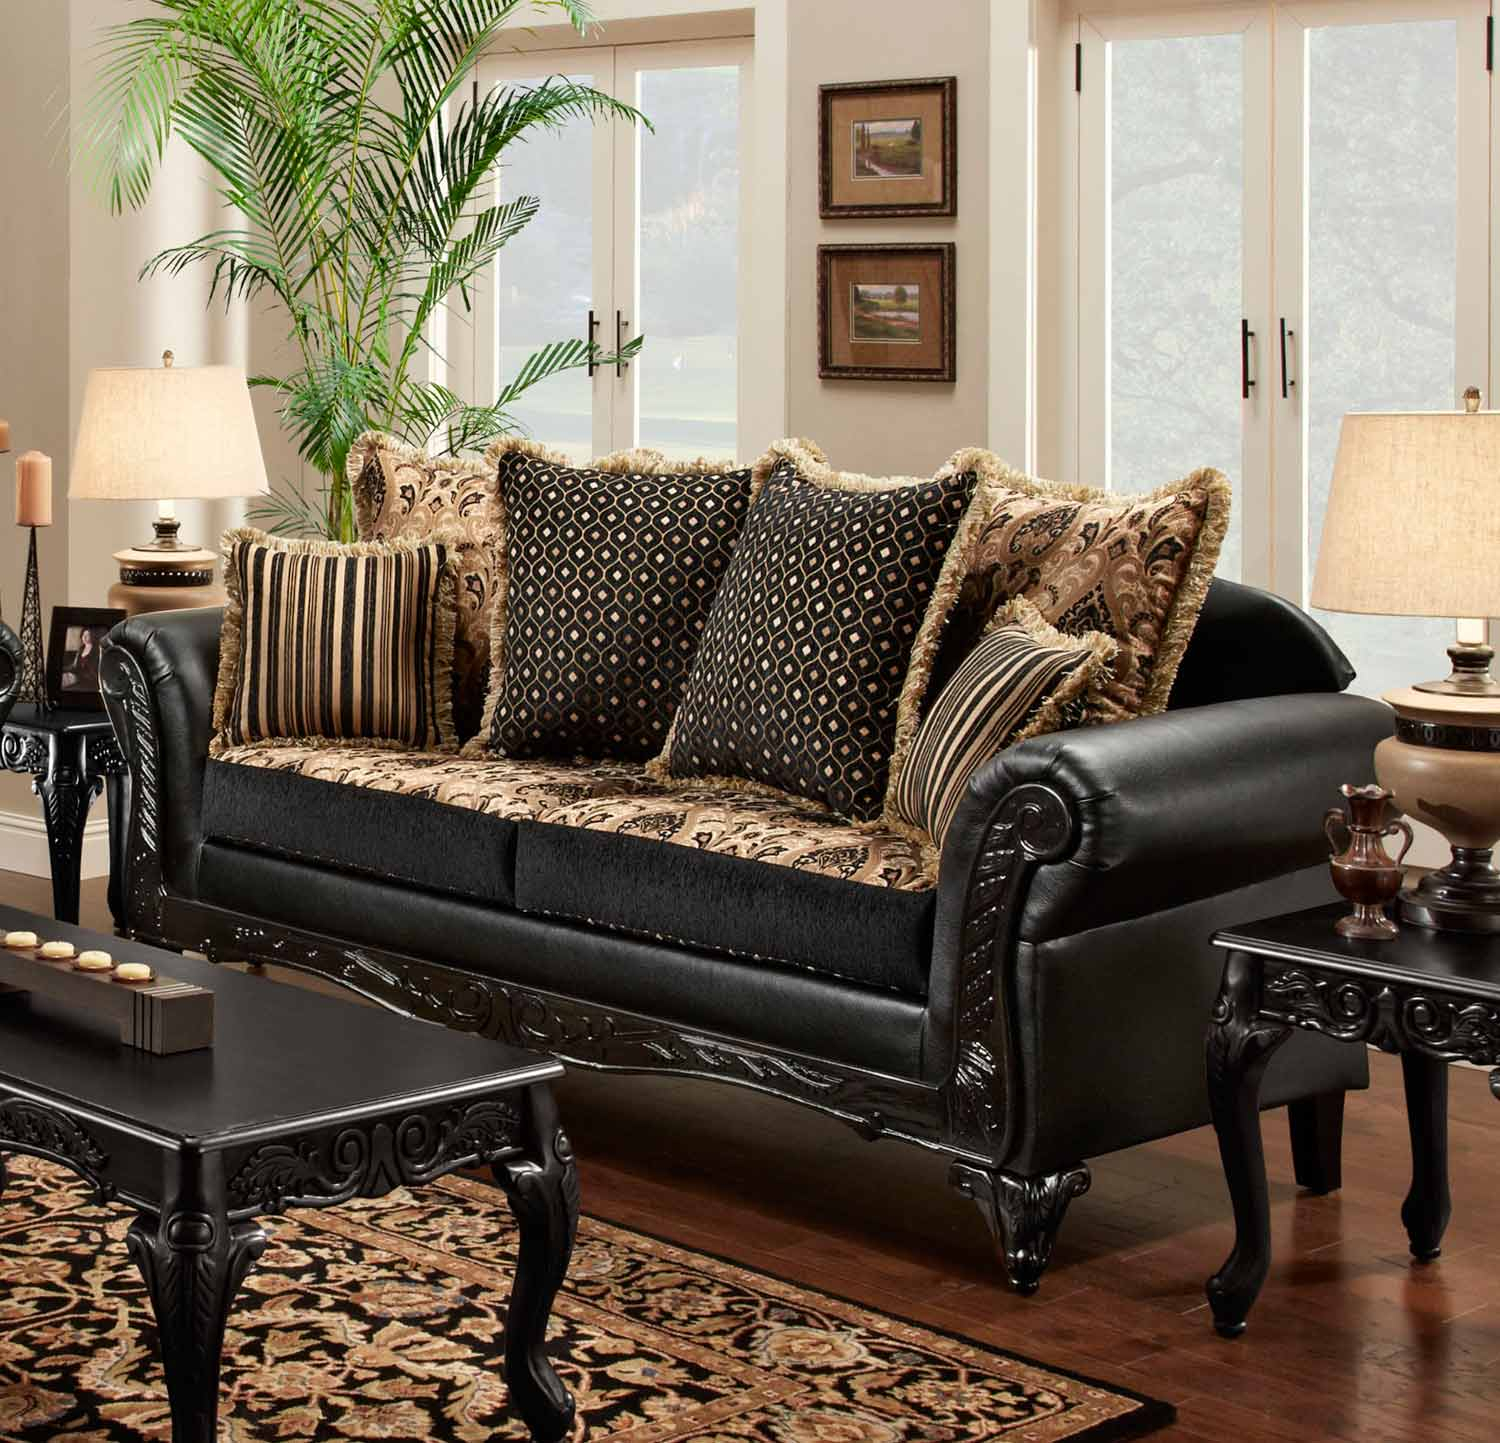 Chelsea Home Gwendolyn Sofa – Monte Carlo Ebony/bi Cast Ebony Chf For Gwen Sofa Chairs (View 25 of 25)